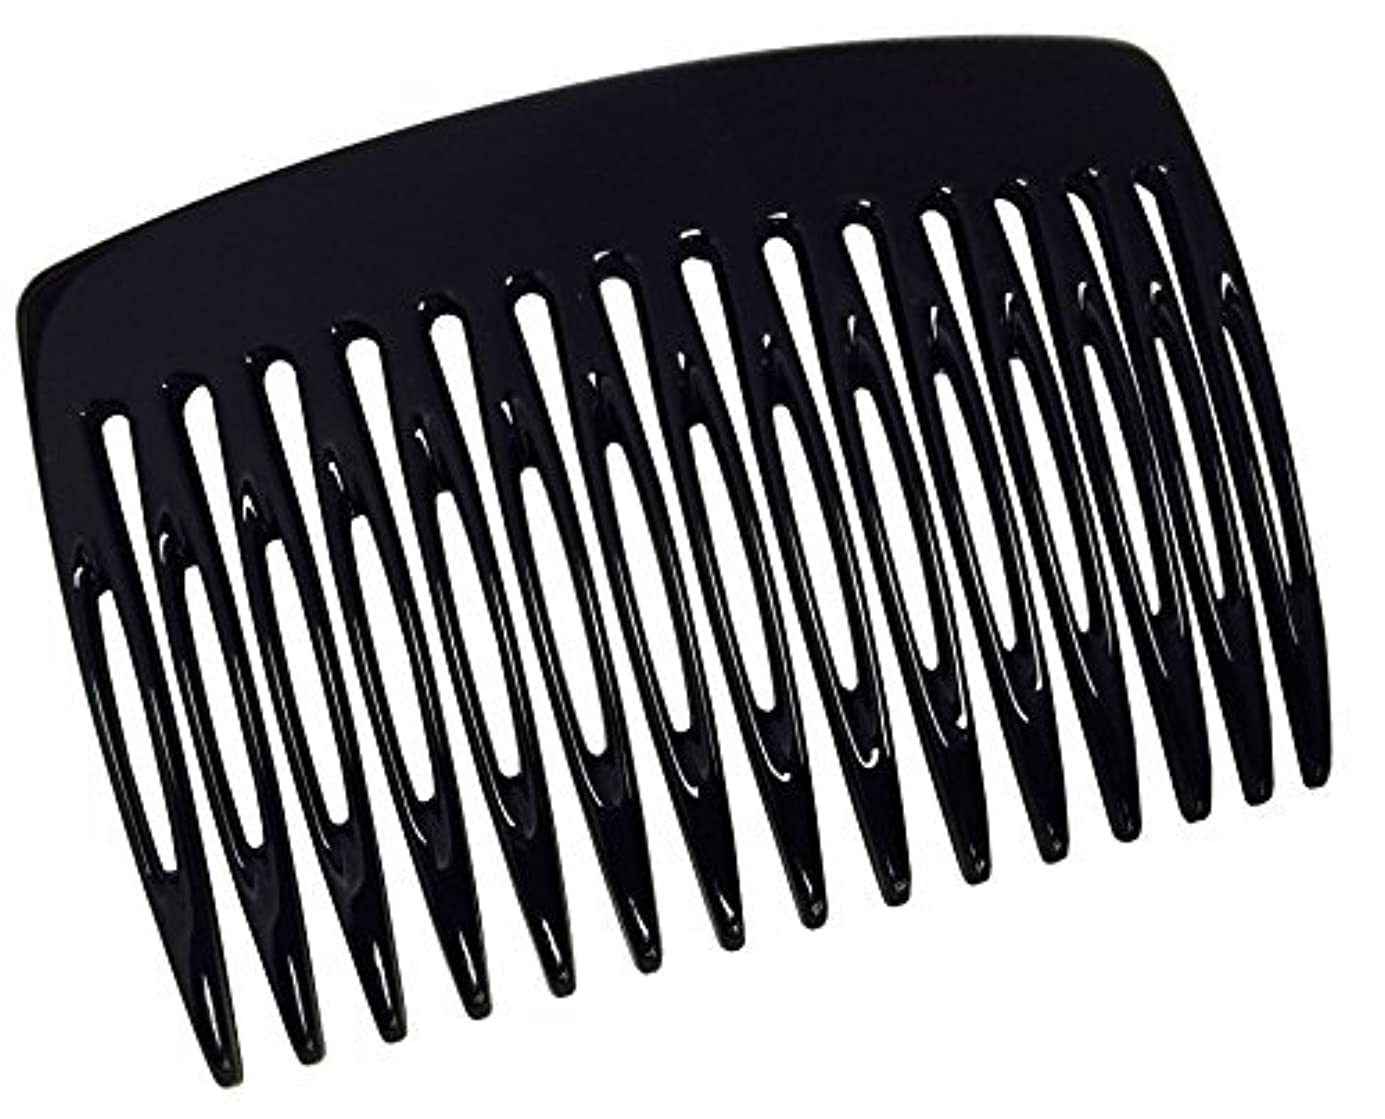 陰気ミネラル落花生Parcelona French Nice N Simple 2 Pieces Cellulose Acetate Glossy Black 7 Cm Side Hair Comb Combs [並行輸入品]